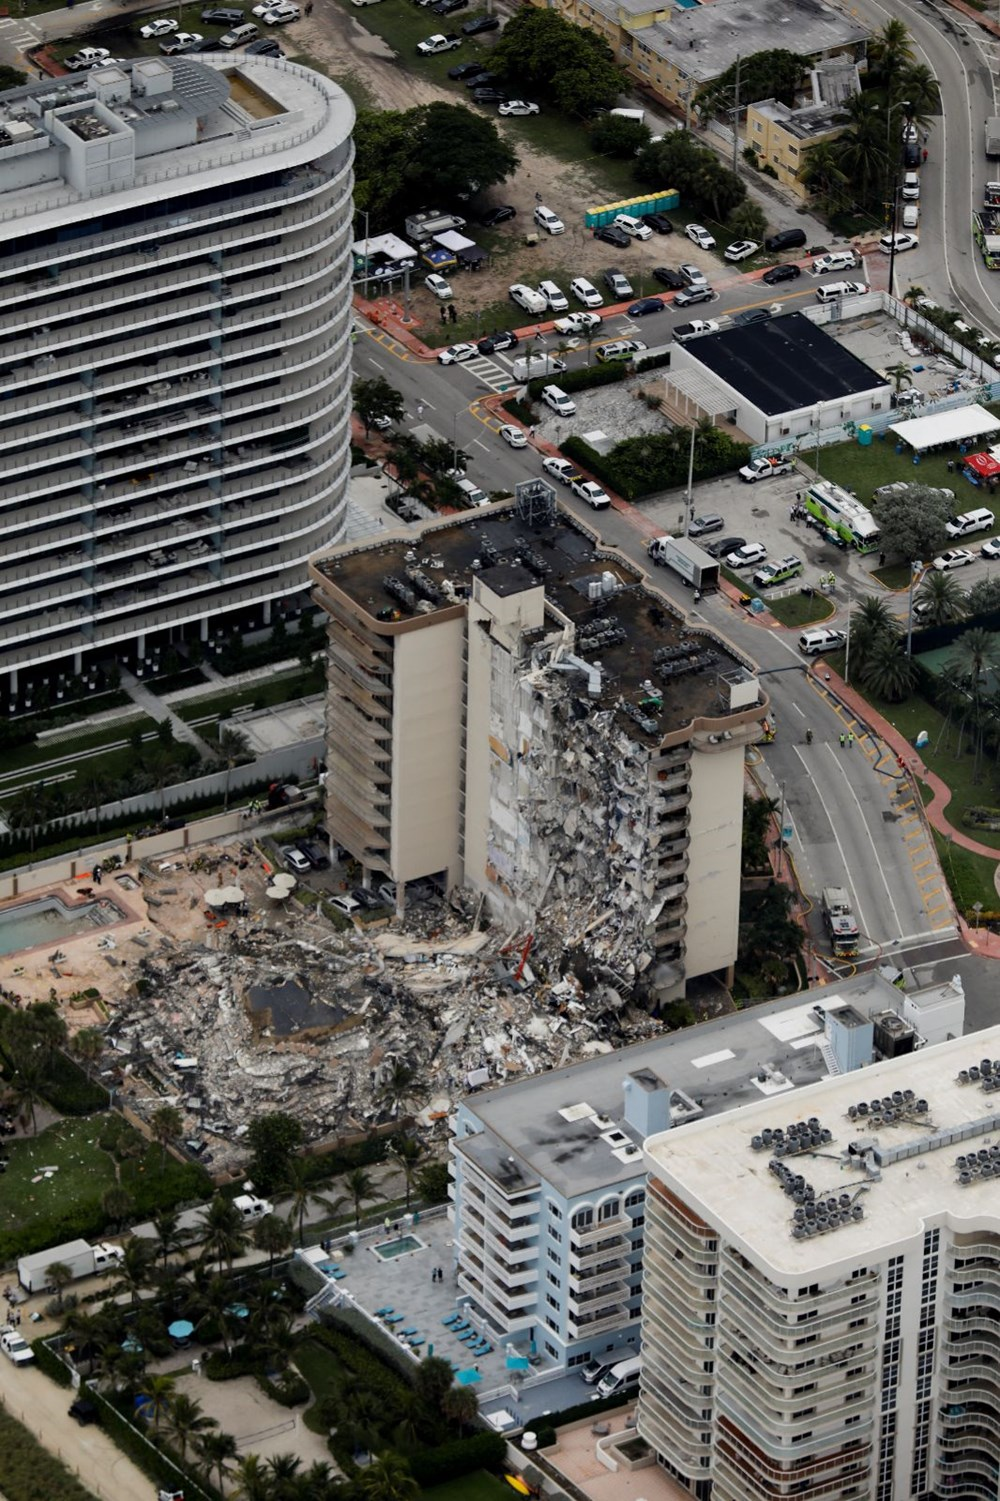 Building collapsed in the USA: Loss of life increased to 4, 159 people missing - 34